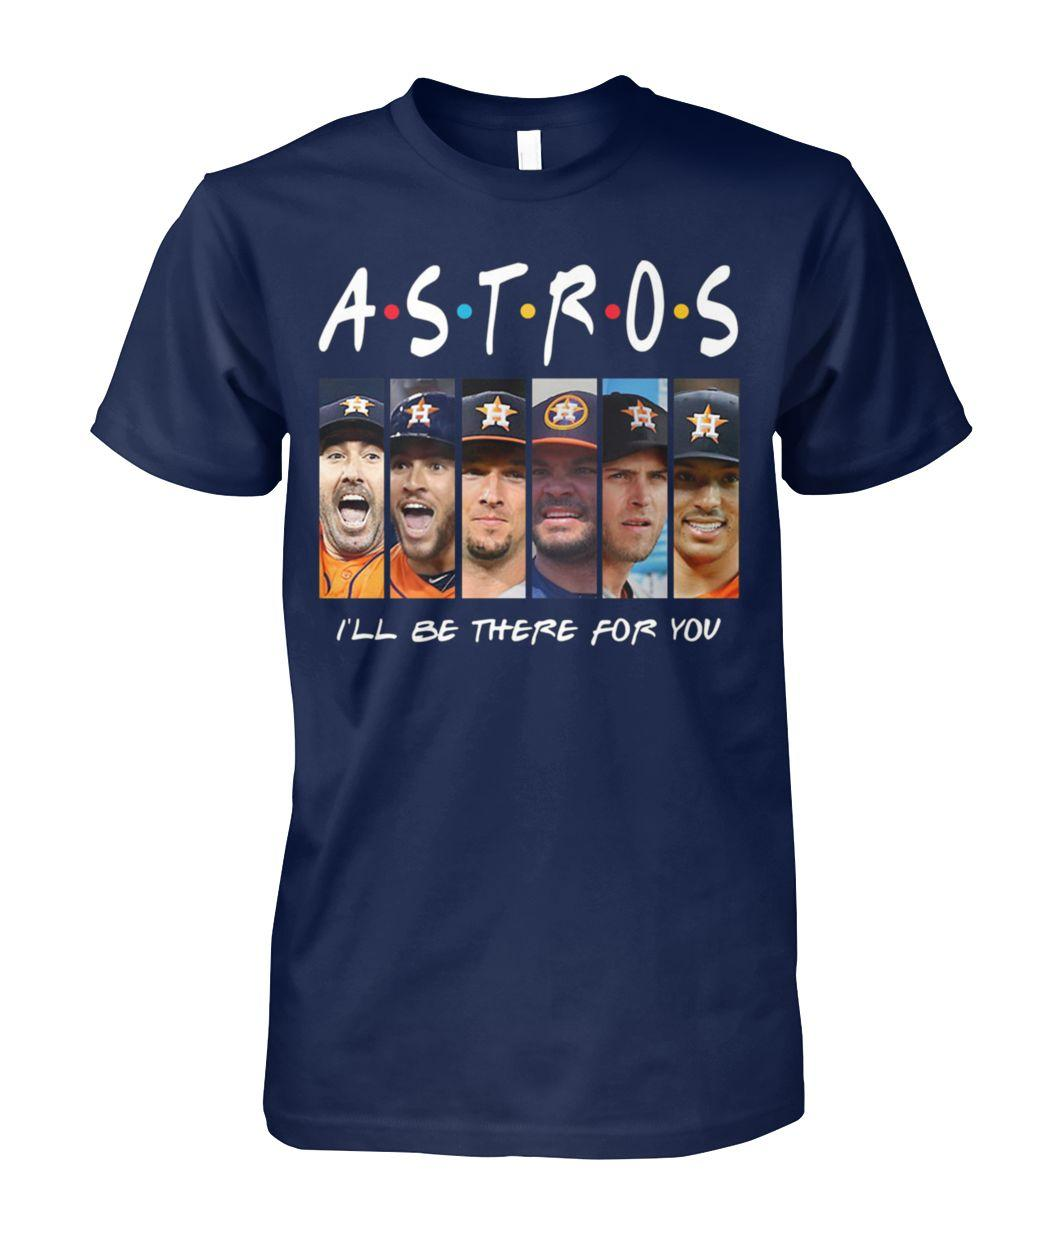 Friends tv show houston astros I'll be there for you unisex cotton tee